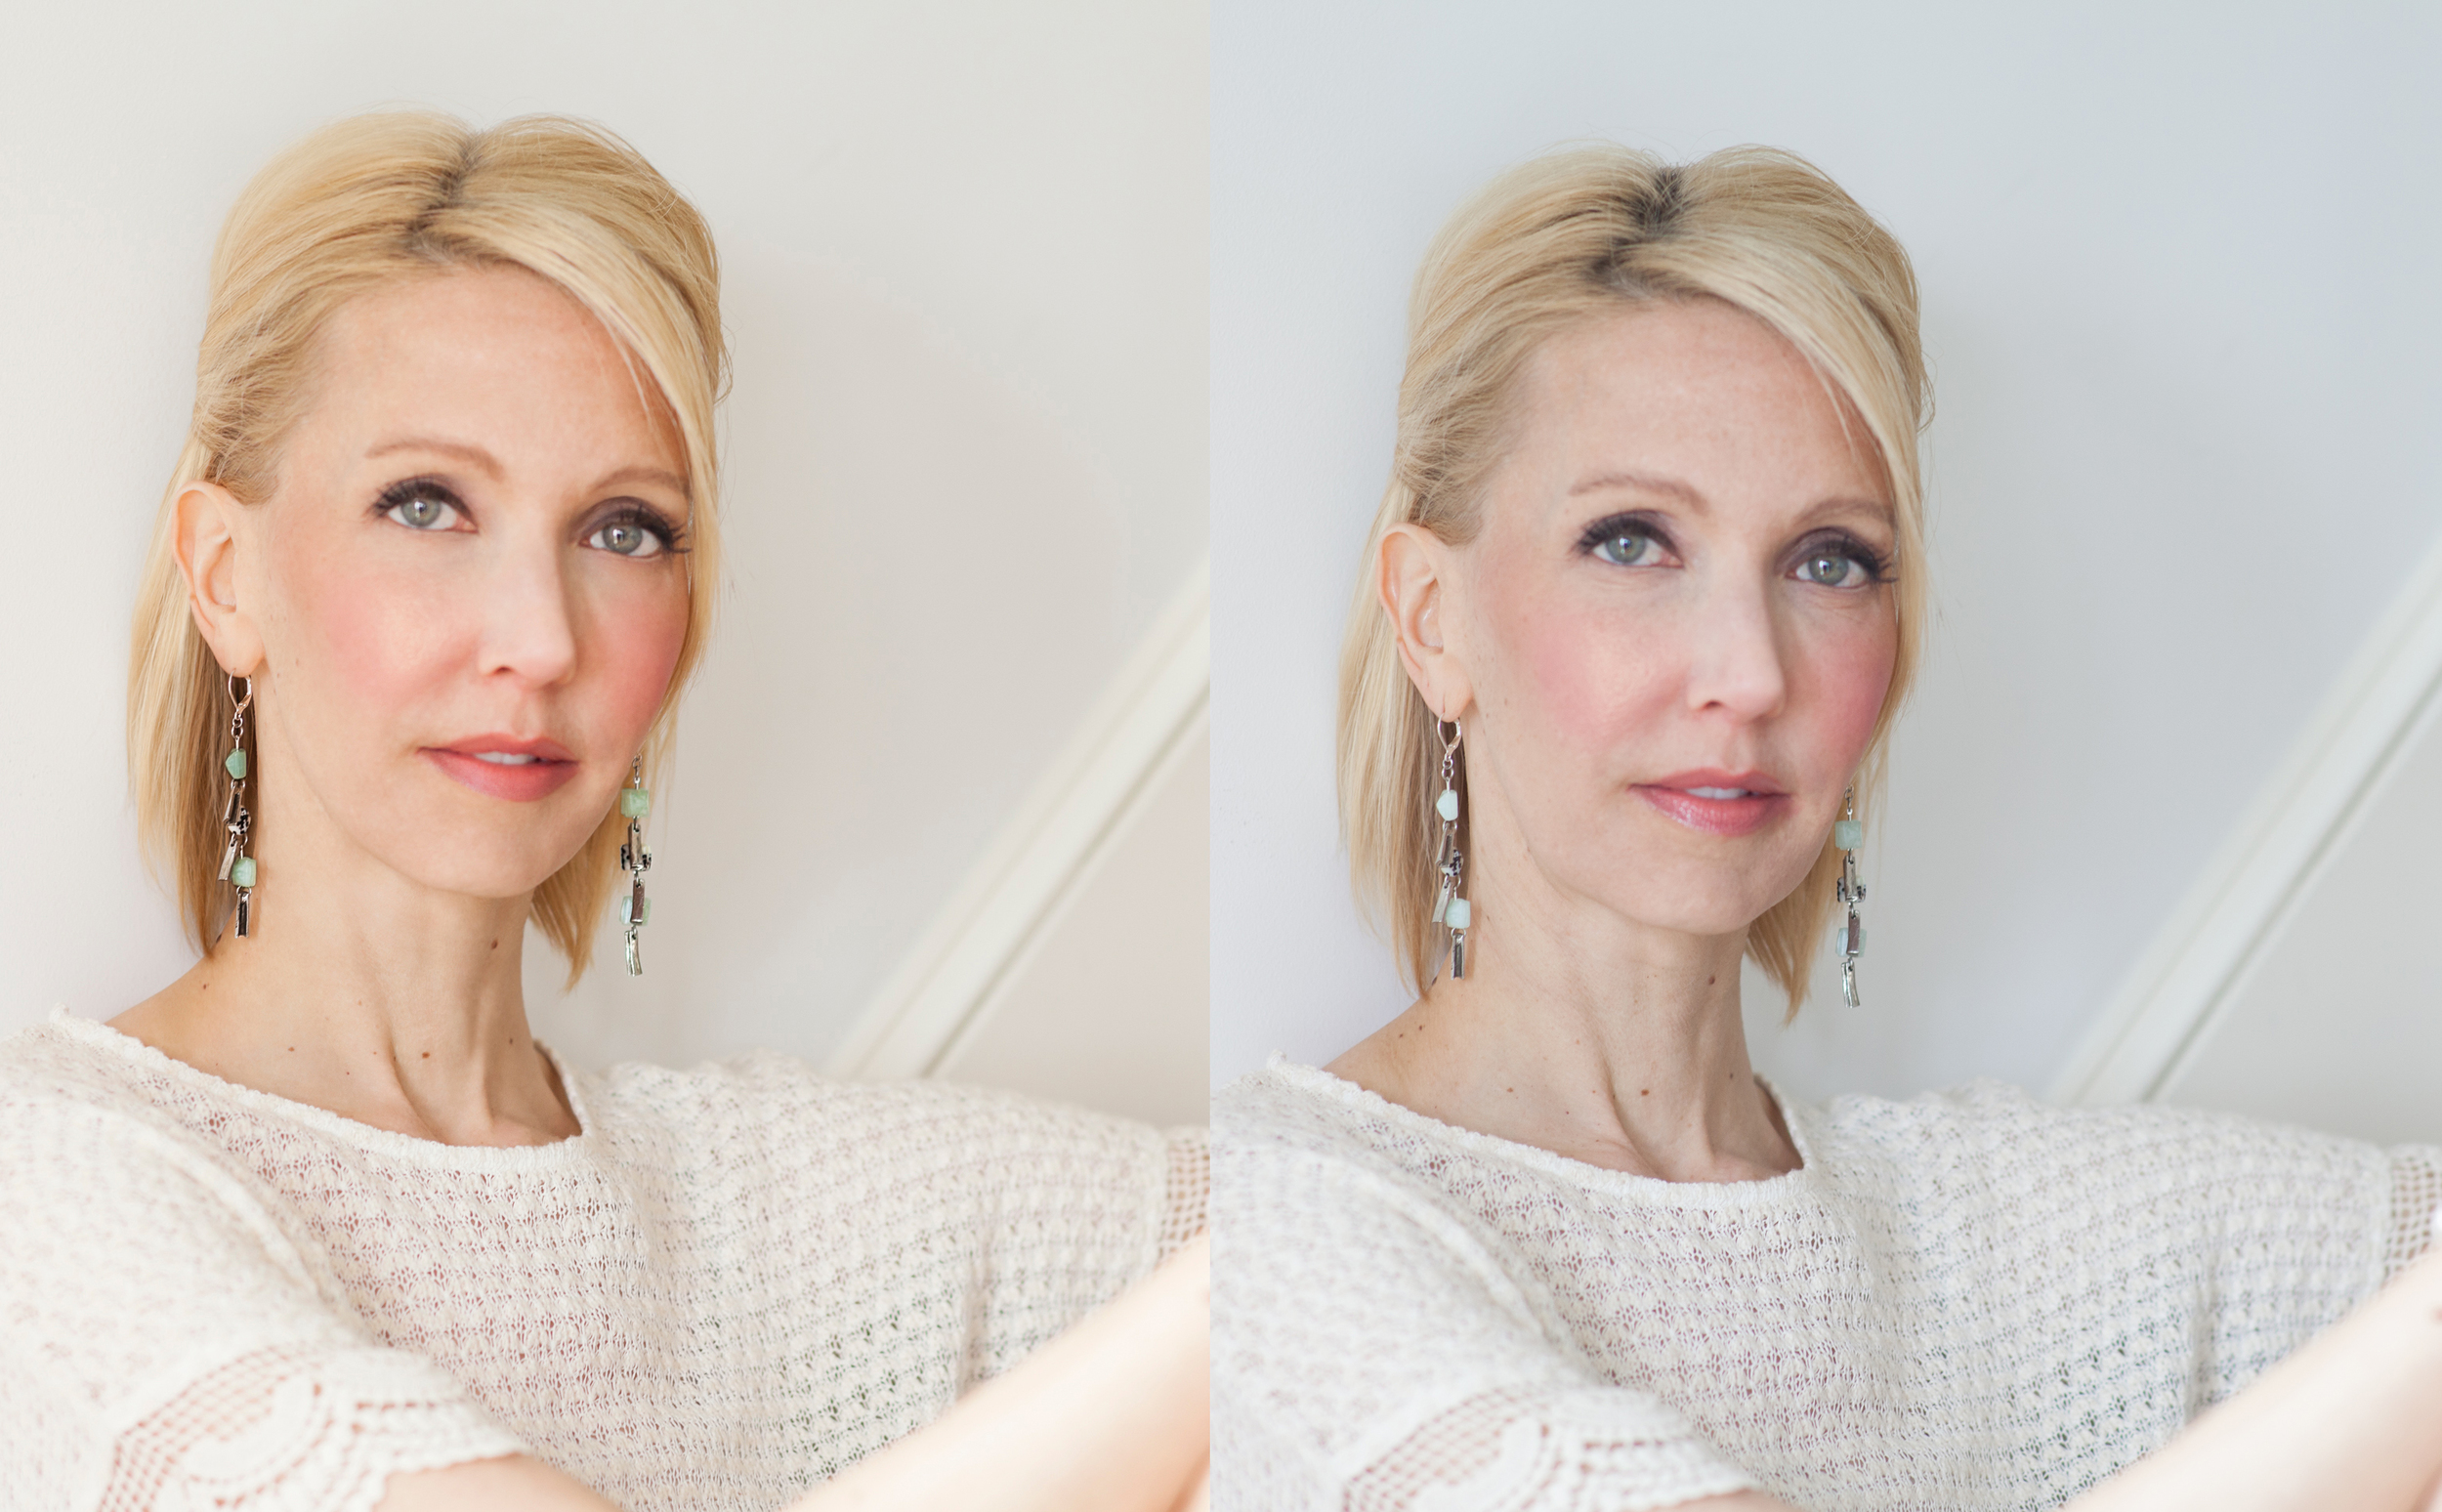 AFTER BEFORE  WORK INVOLVED: color correction, beauty/skin retouch maintaining a natural look